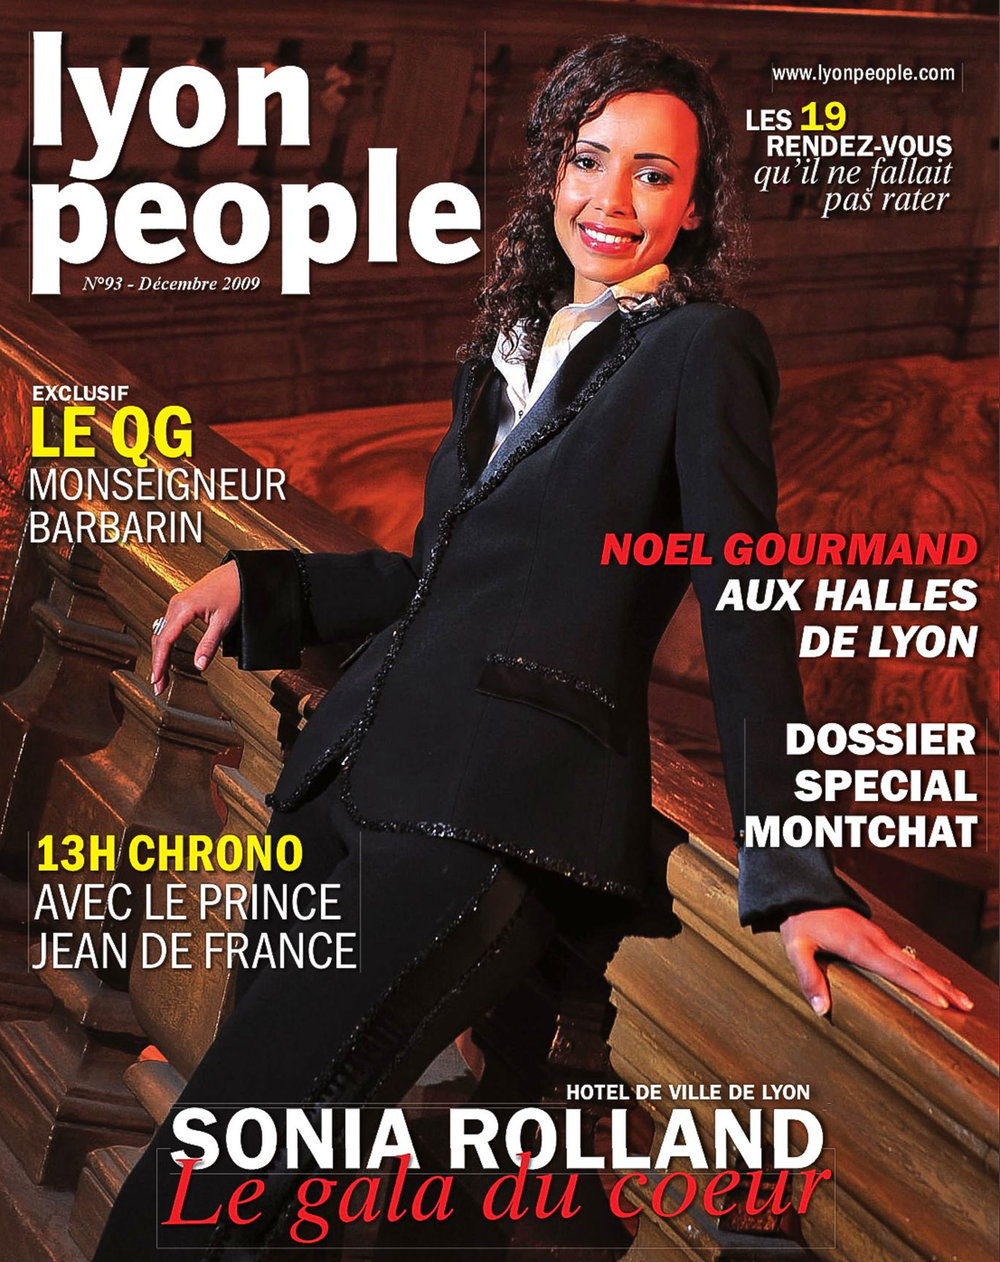 Couv Sonia Rolland.jpg